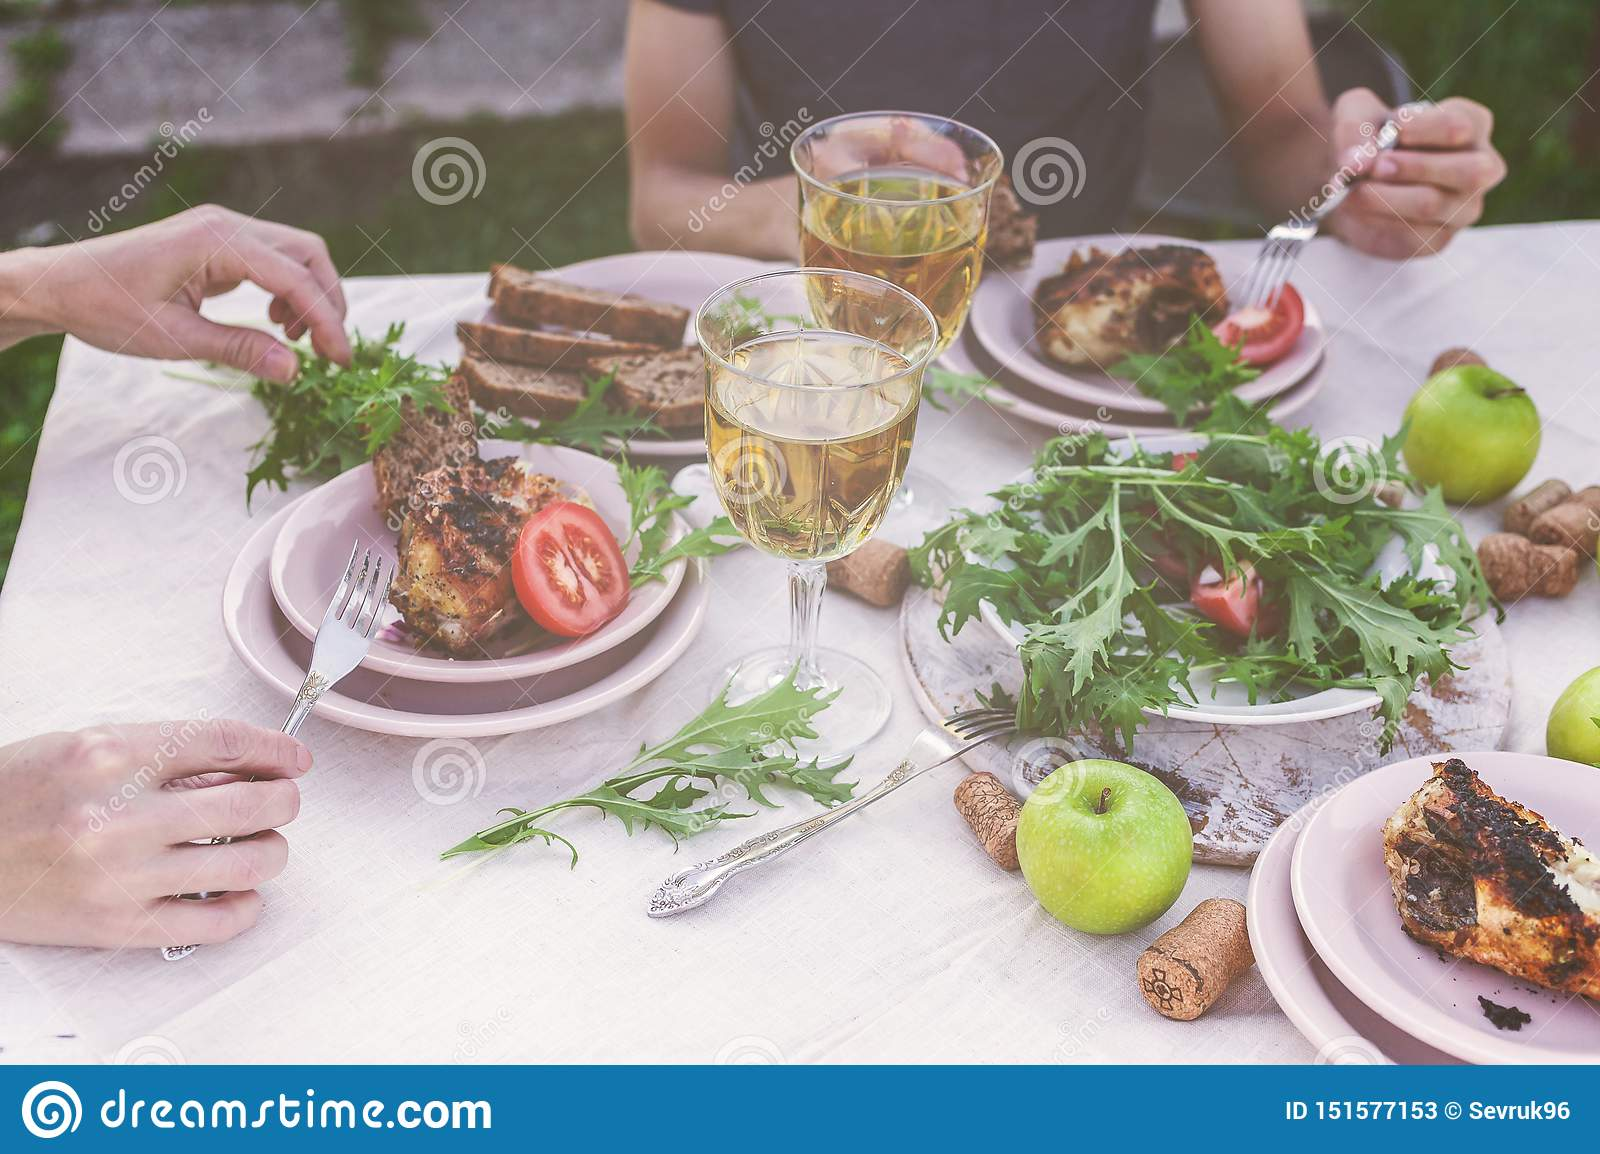 Dinner in the garden. People eat at the table with wine, grilled fish, fresh vegetables and herbs. Horizontal shot